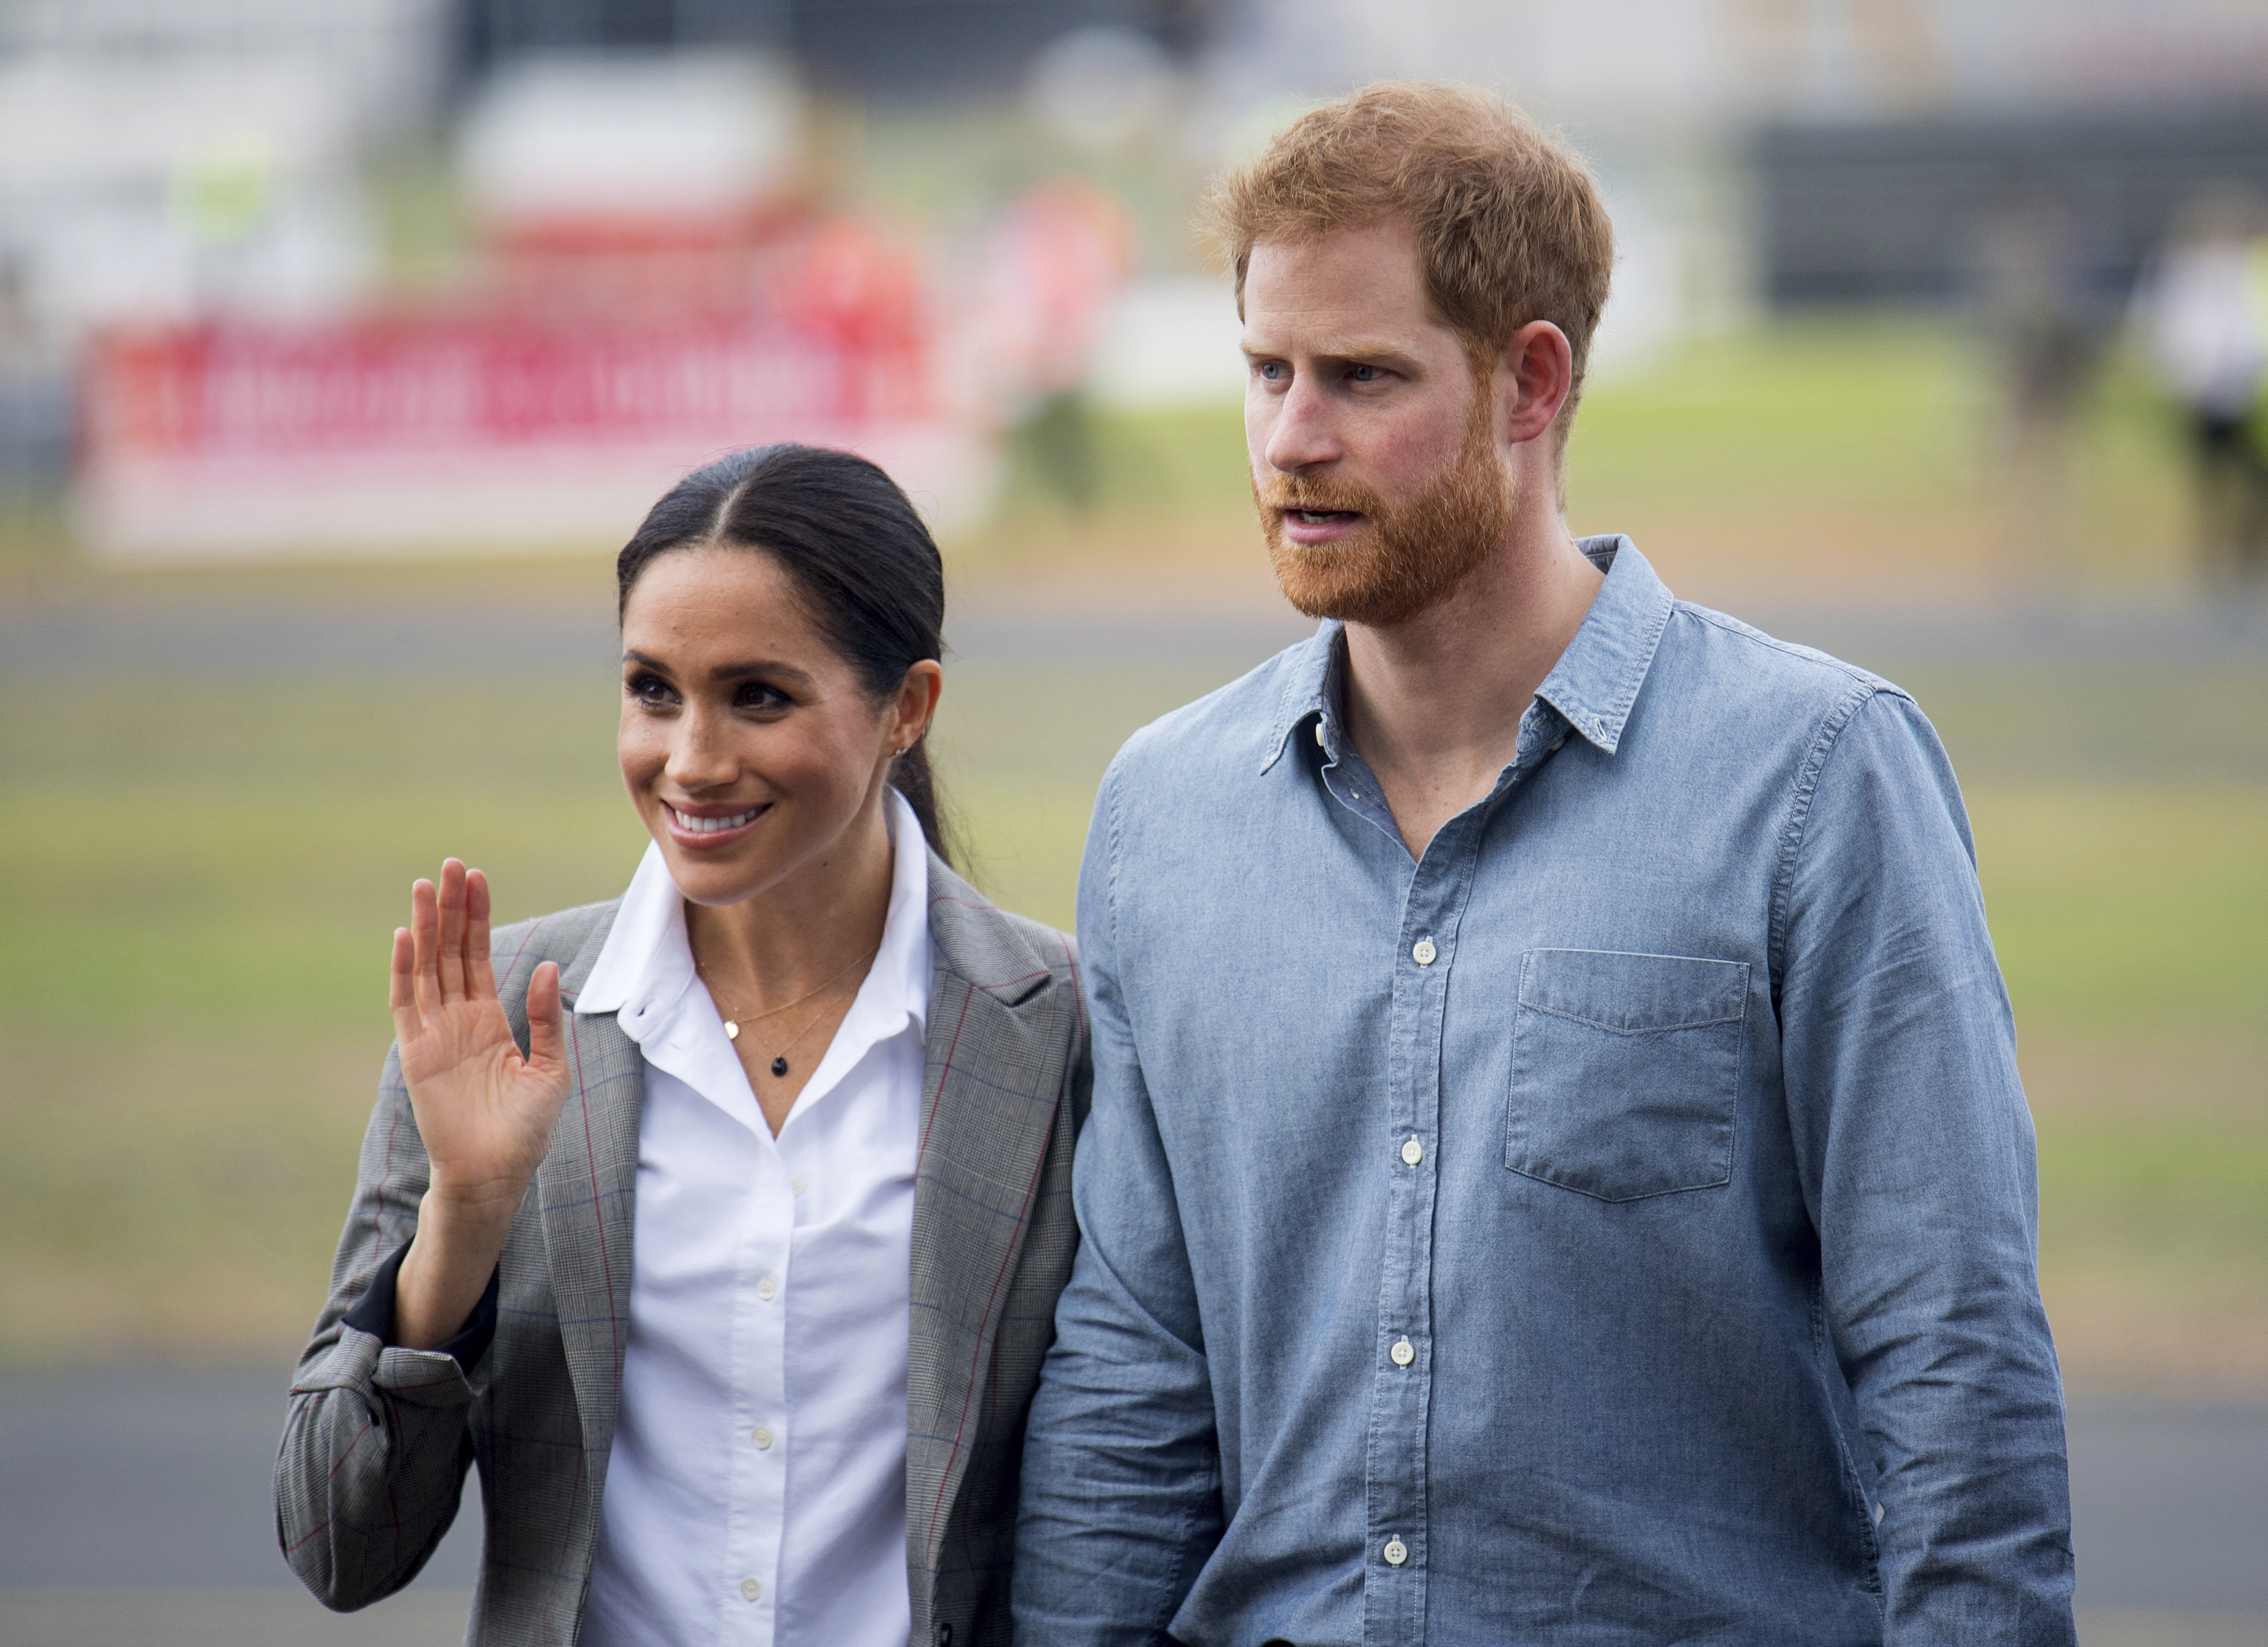 The Duke and Duchess of Sussex attend the naming and unveiling of a new Royal Flying Doctor Service aircraft at Dubbo City Regional Airport, in Dubbo, Australia, Wednesday, Oct. 17, 2018. Prince Harry and his wife Meghan are on day two of their 16-day tour of Australia and the South Pacific. (Dominic Lipinski/Pool via AP)